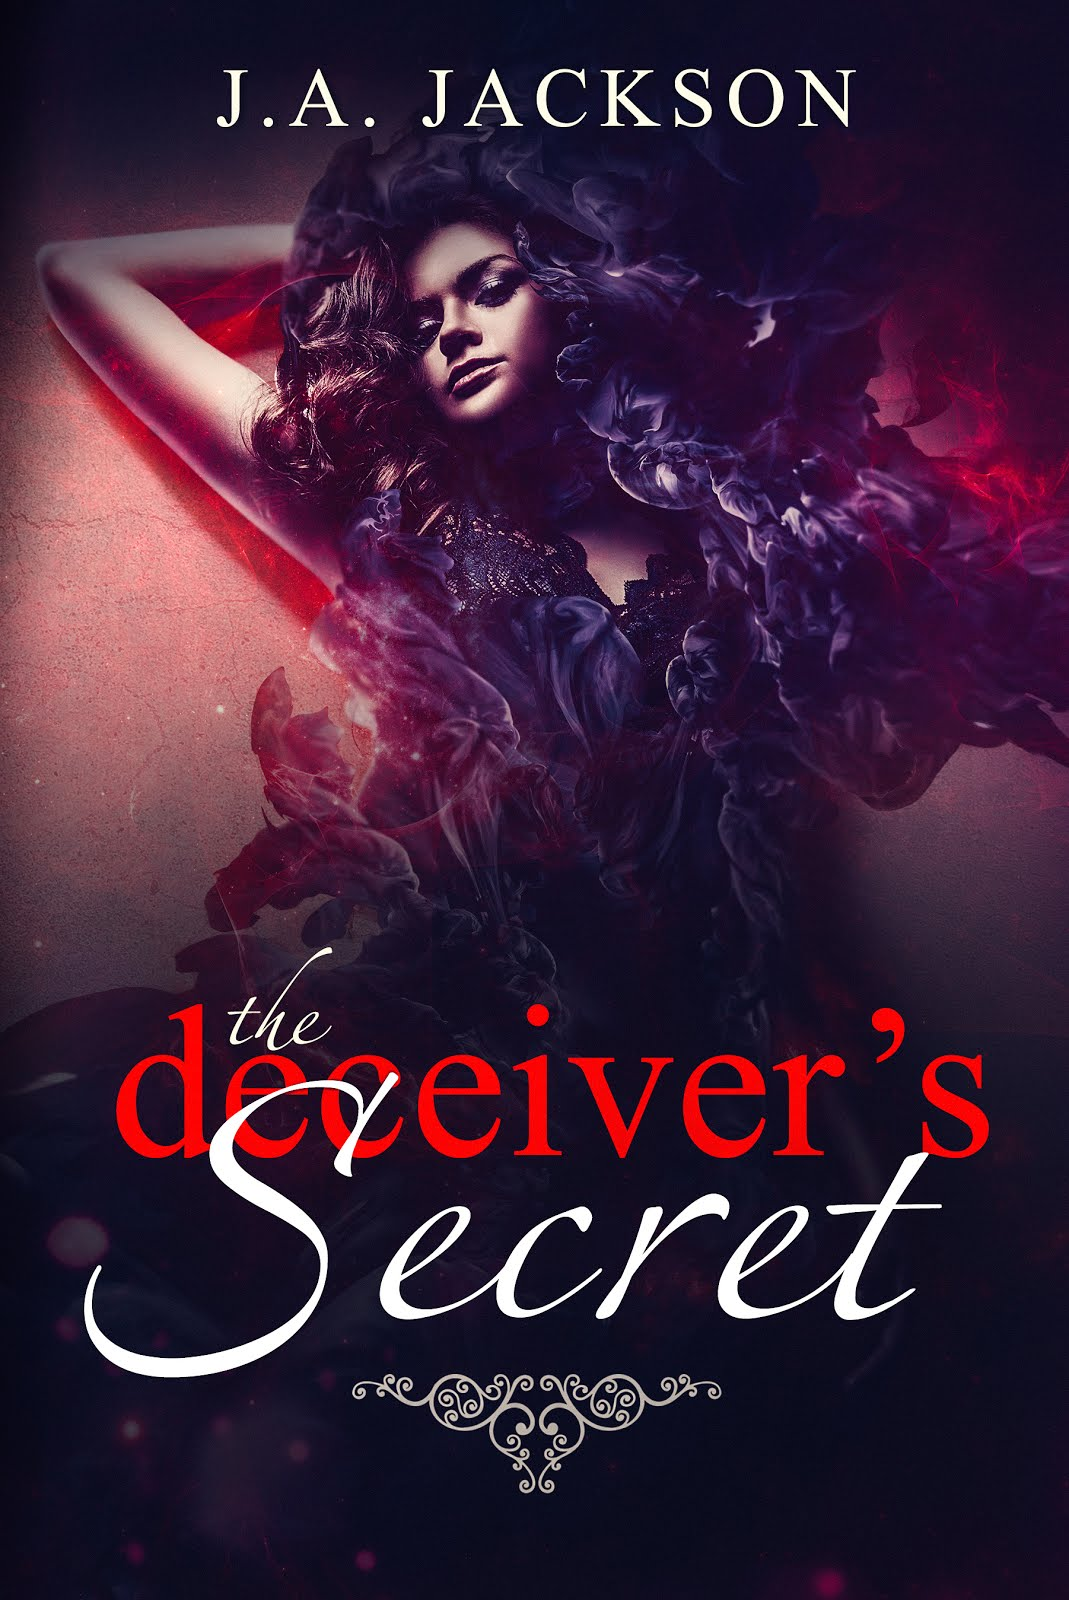 The Deceiver's Secret!